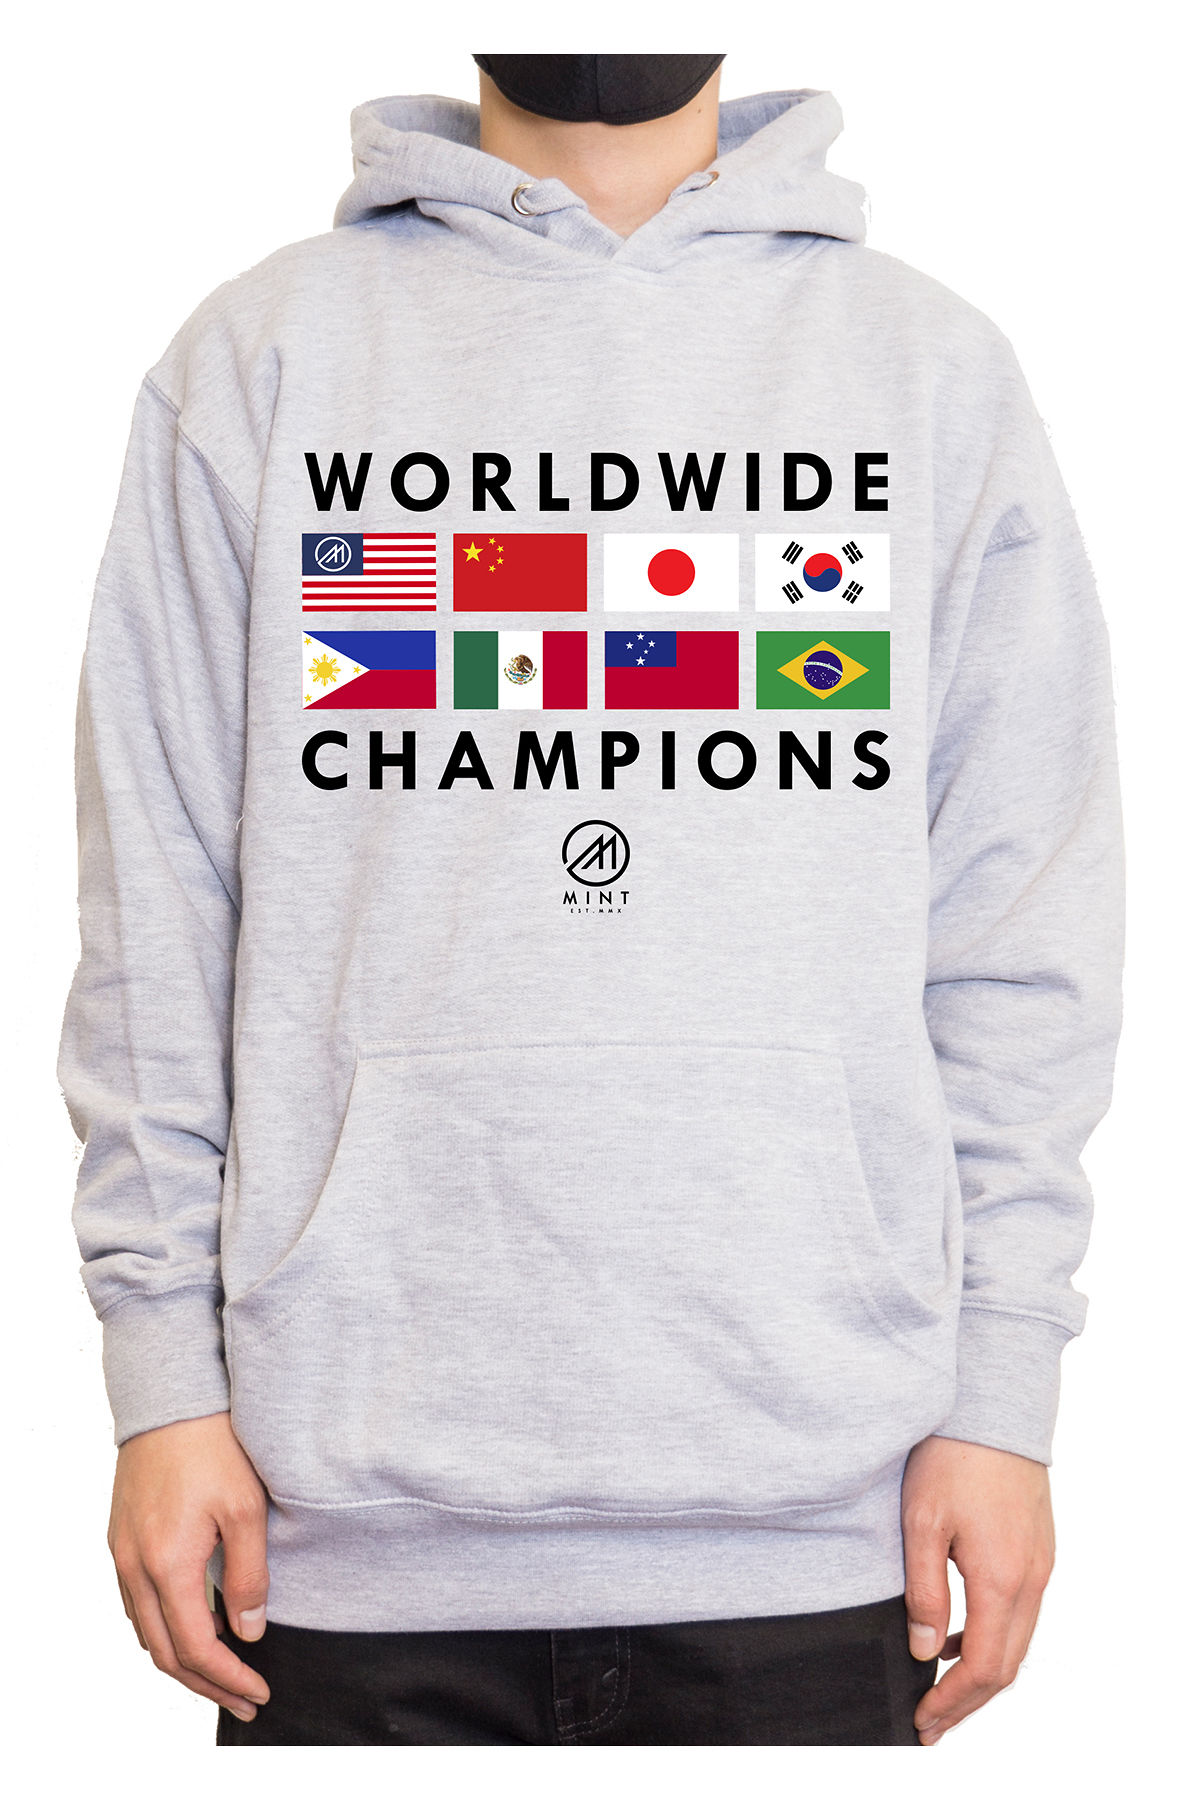 Image of The Mint Flags 2 Pullover Hoodie in Heather